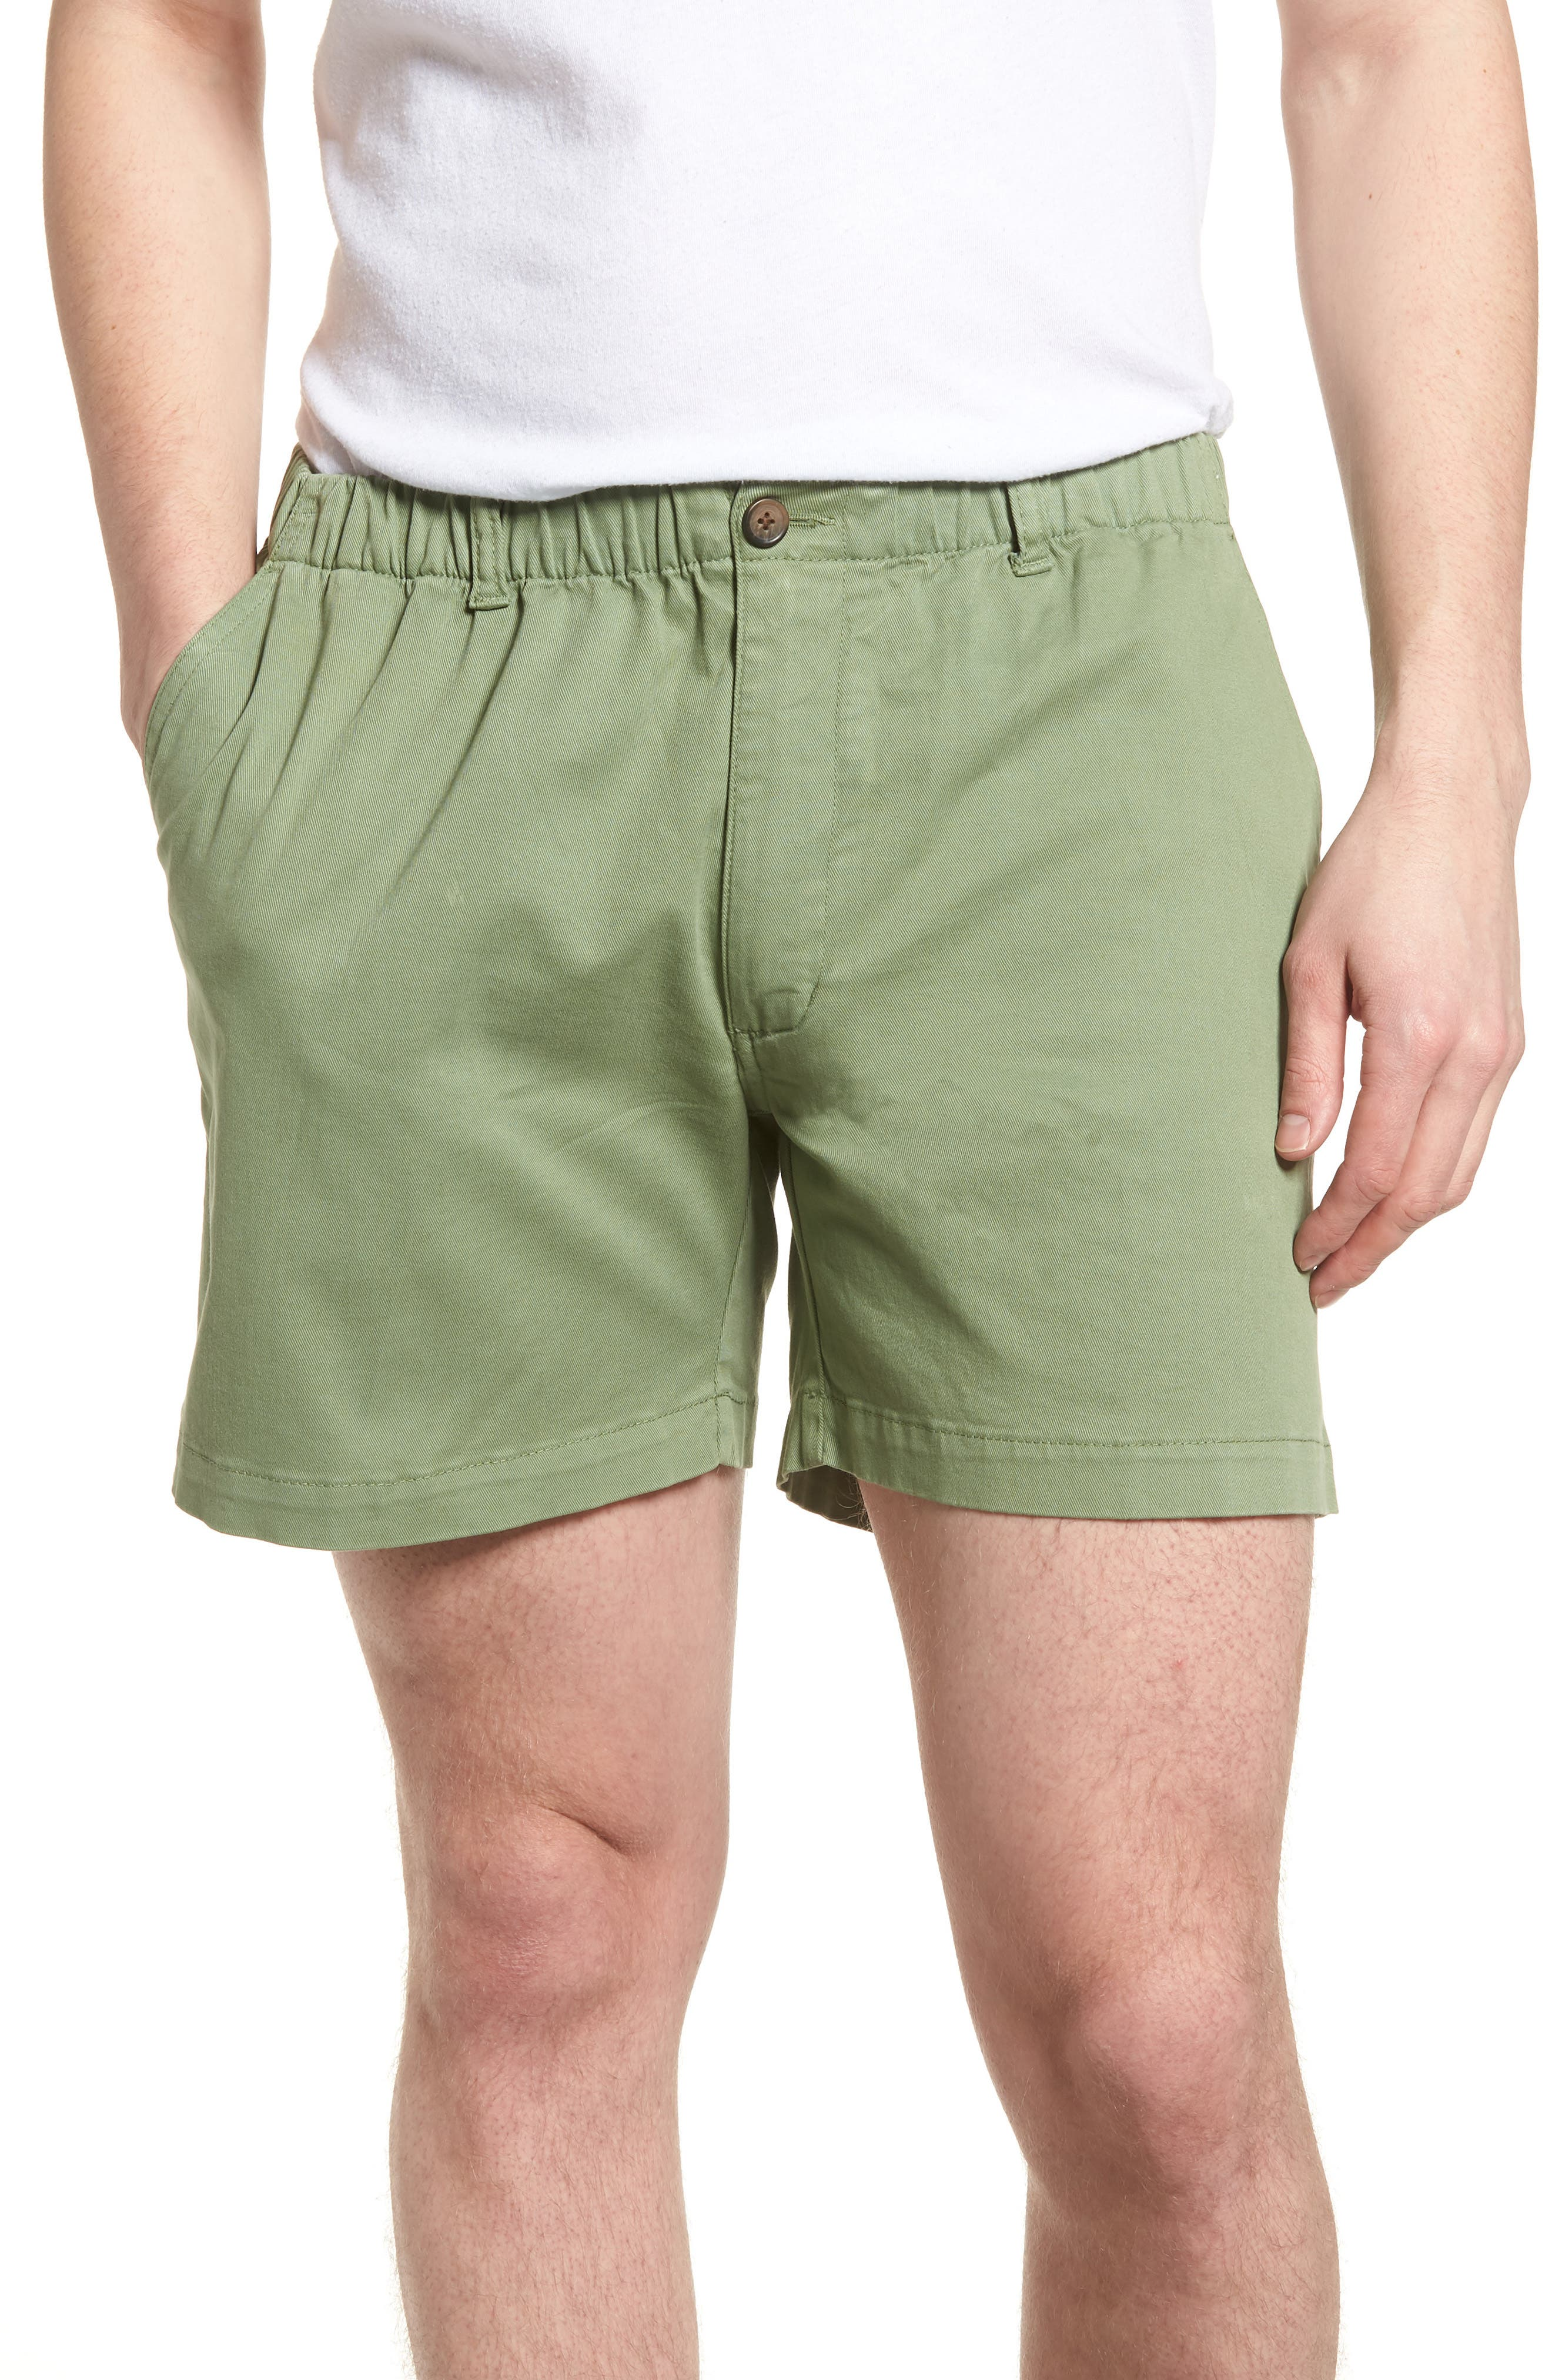 Snappers Elastic Waist 5.5 Inch Stretch Shorts,                         Main,                         color, HEDGE